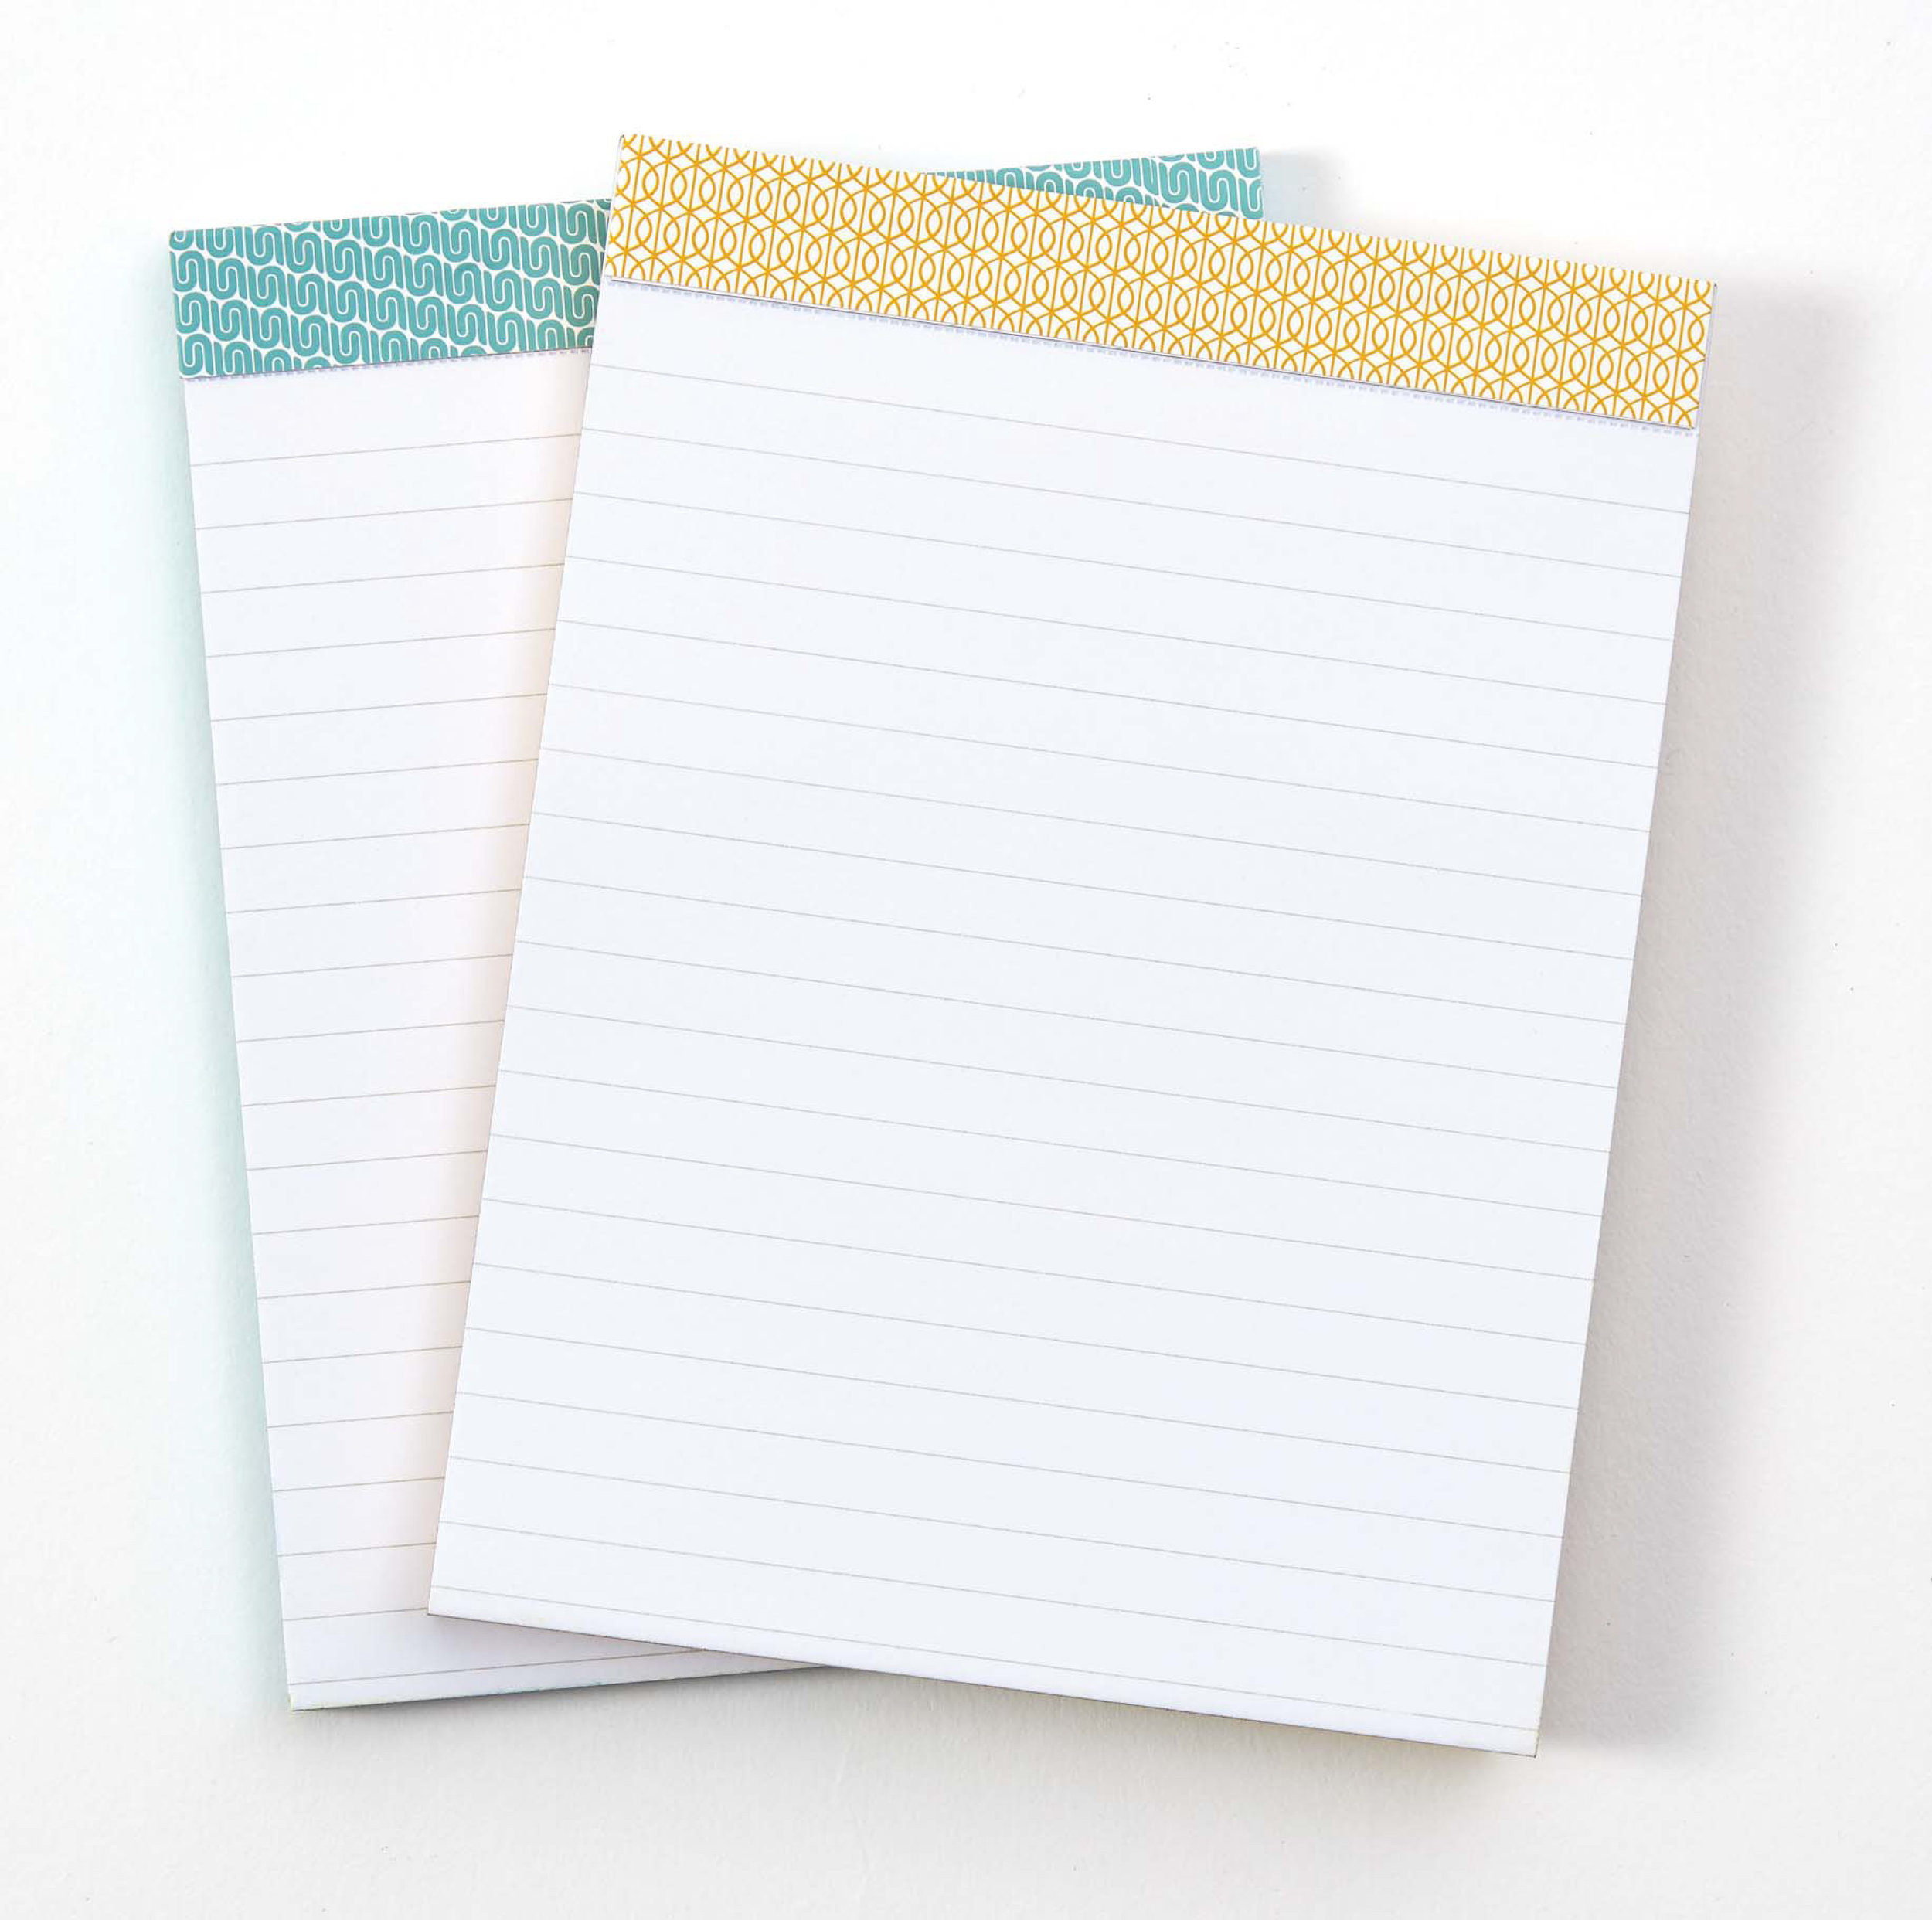 DS small notepad 2 pk 50 sheets 5.8 x 4.25 in_2.jpg